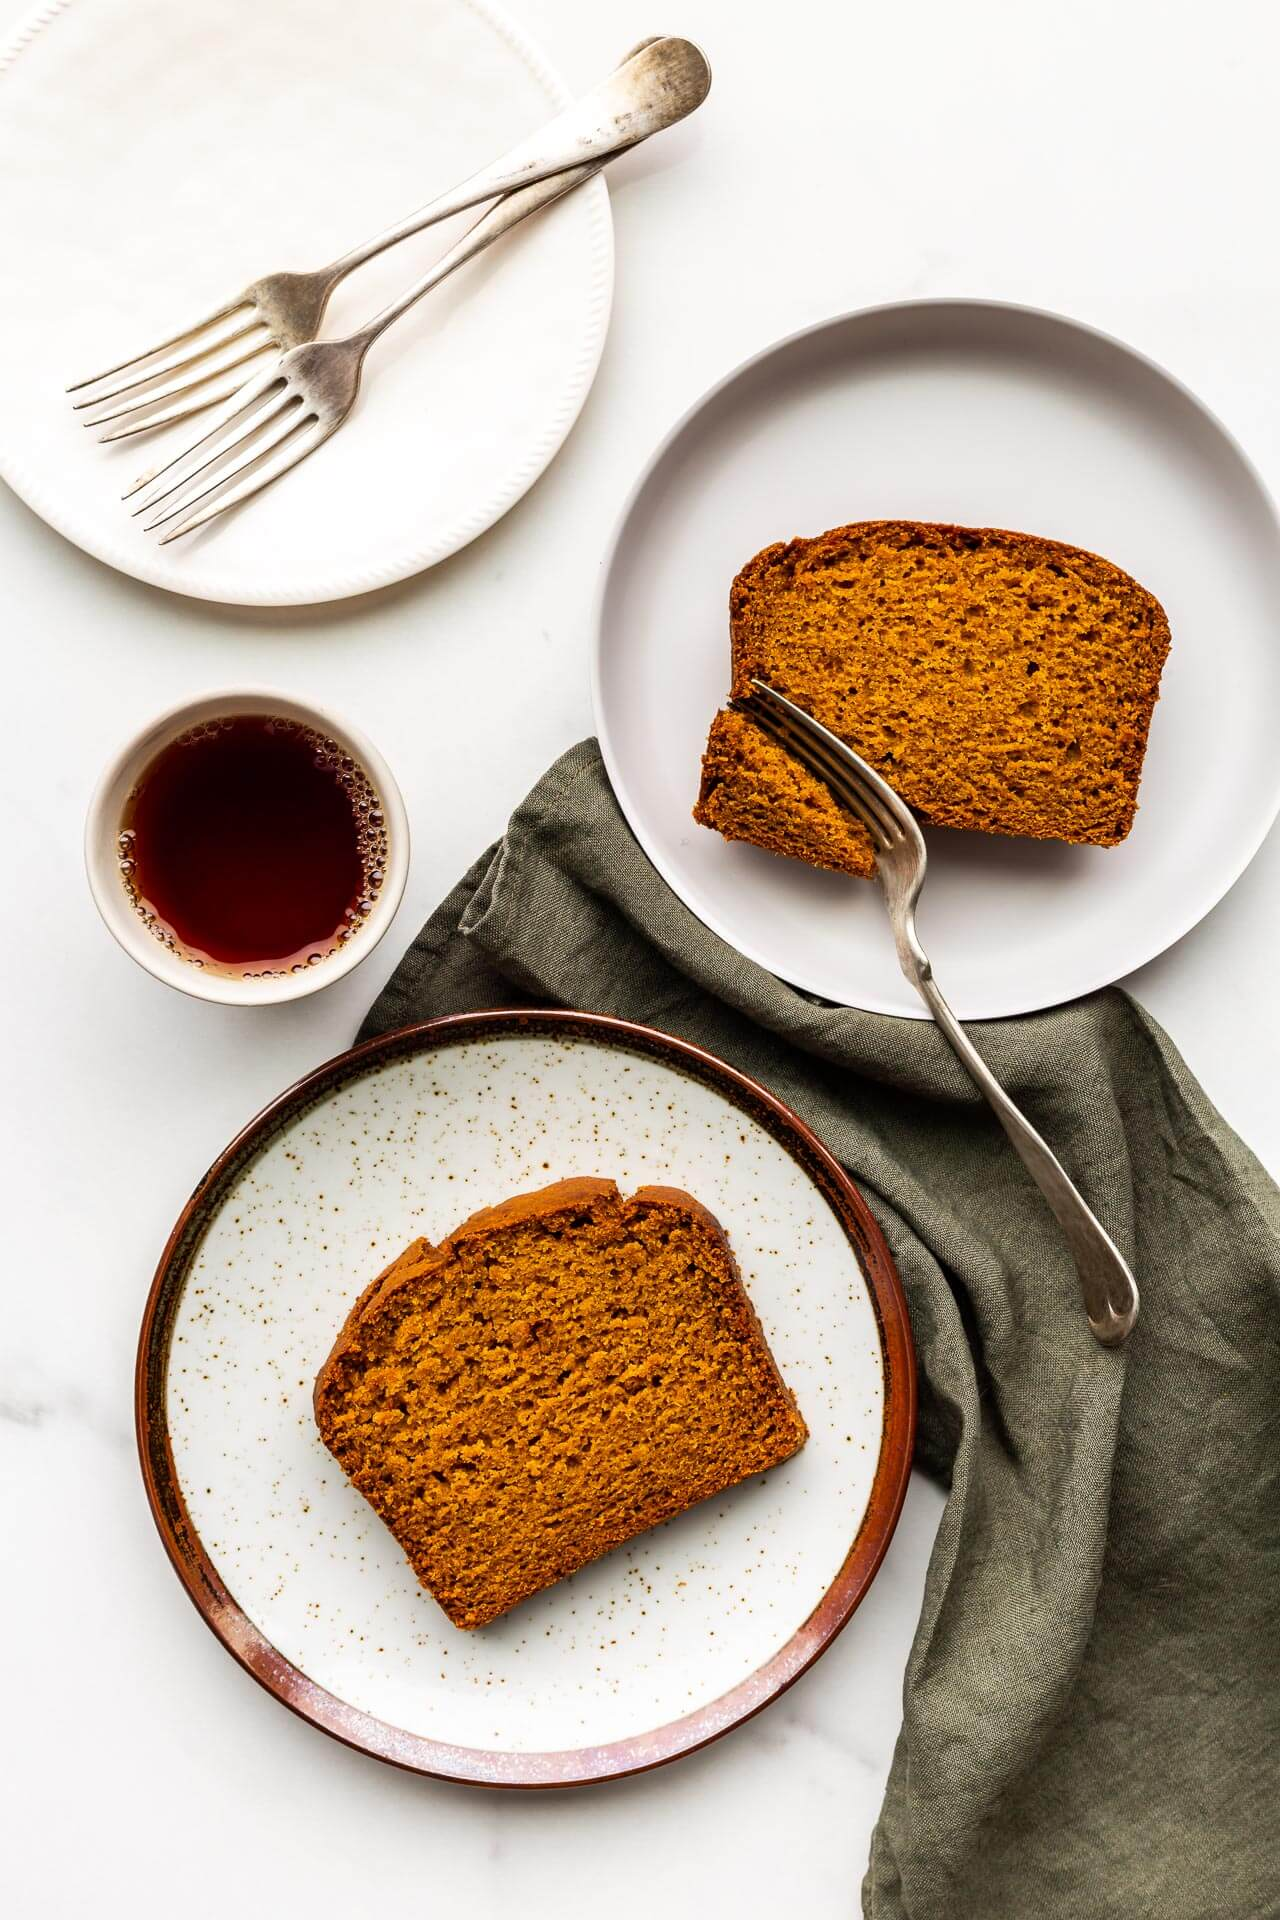 Slices of pumpkin bread served on speckled plates with a cup of tea and green linen